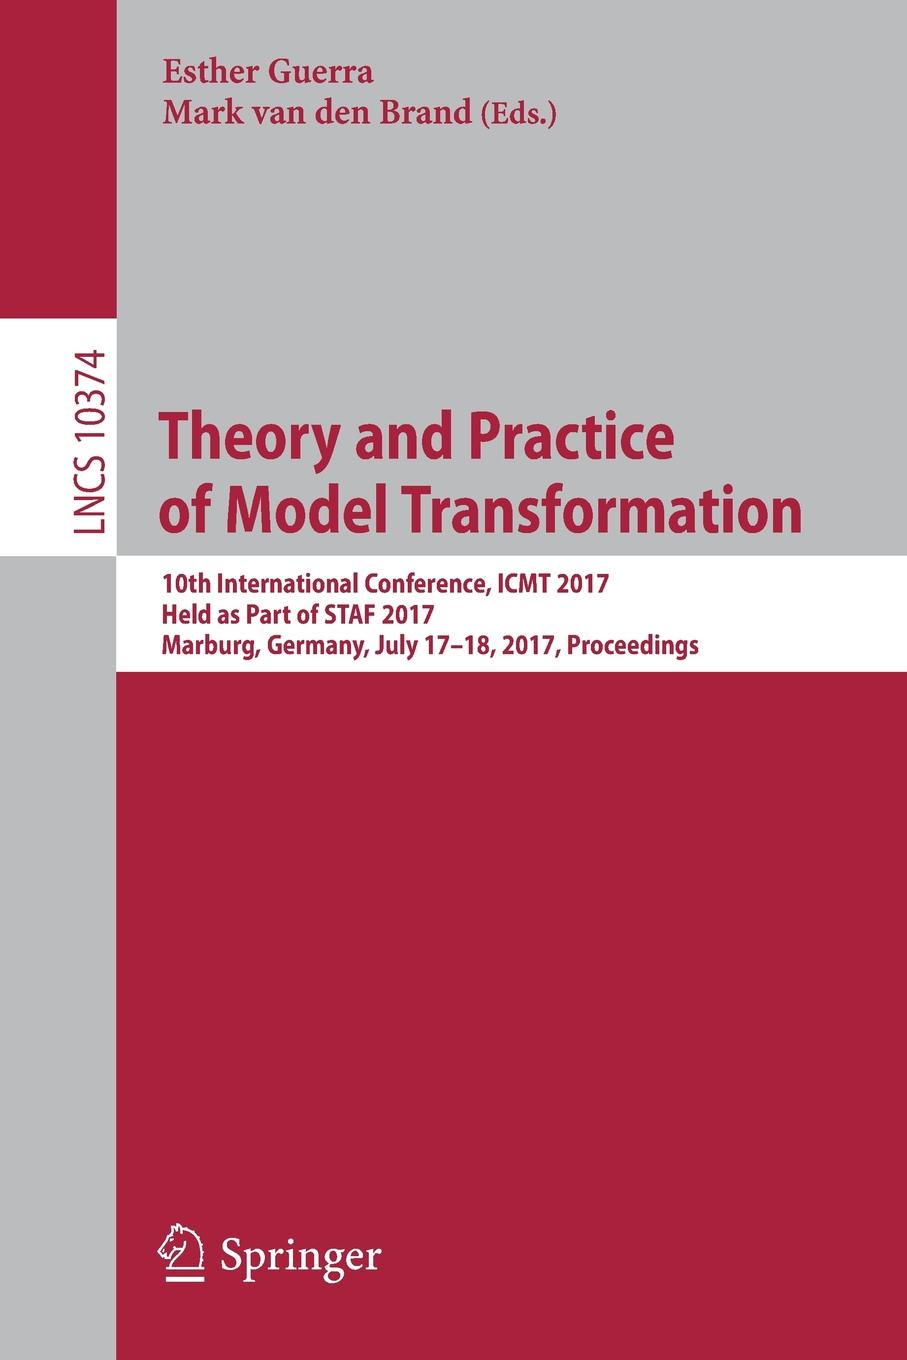 Theory and Practice of Model Transformation. 10th International Conference, ICMT 2017, Held as Part of STAF 2017, Marburg, Germany, July 17-18, 2017, Proceedings new and original h5cz l8e omron time relay 100 240vac